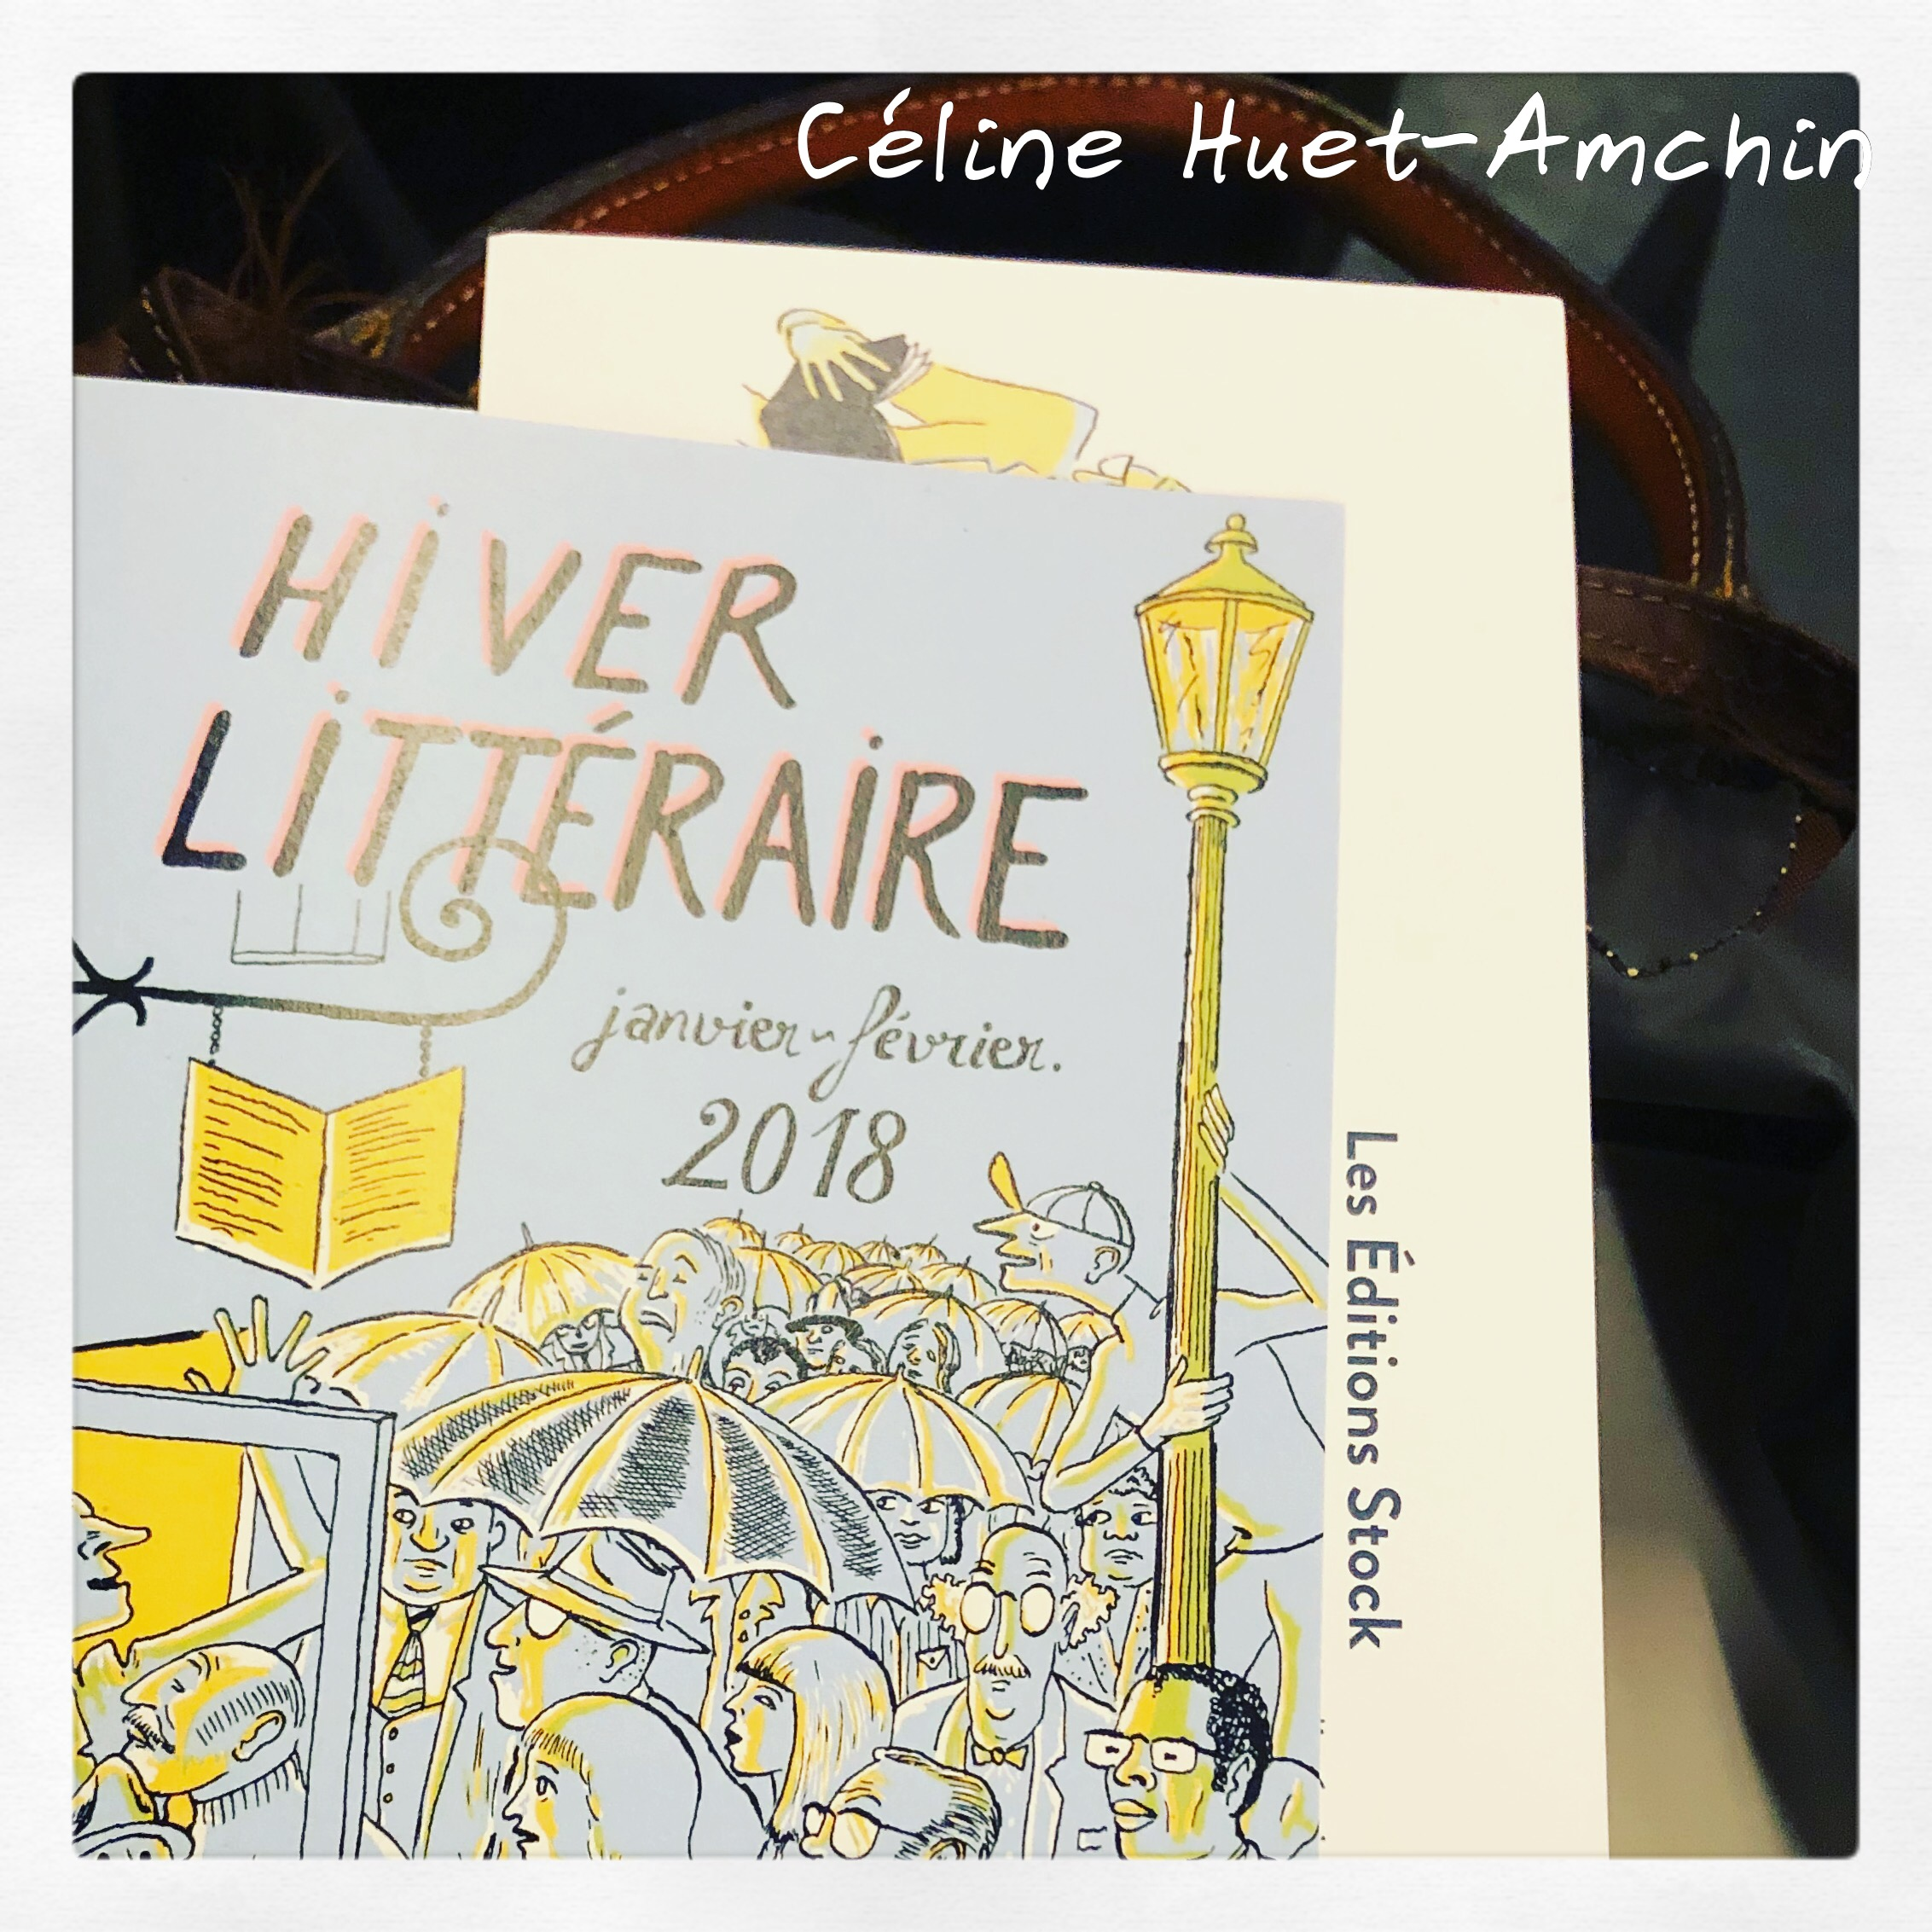 Hiver Littéraire Editions Stock